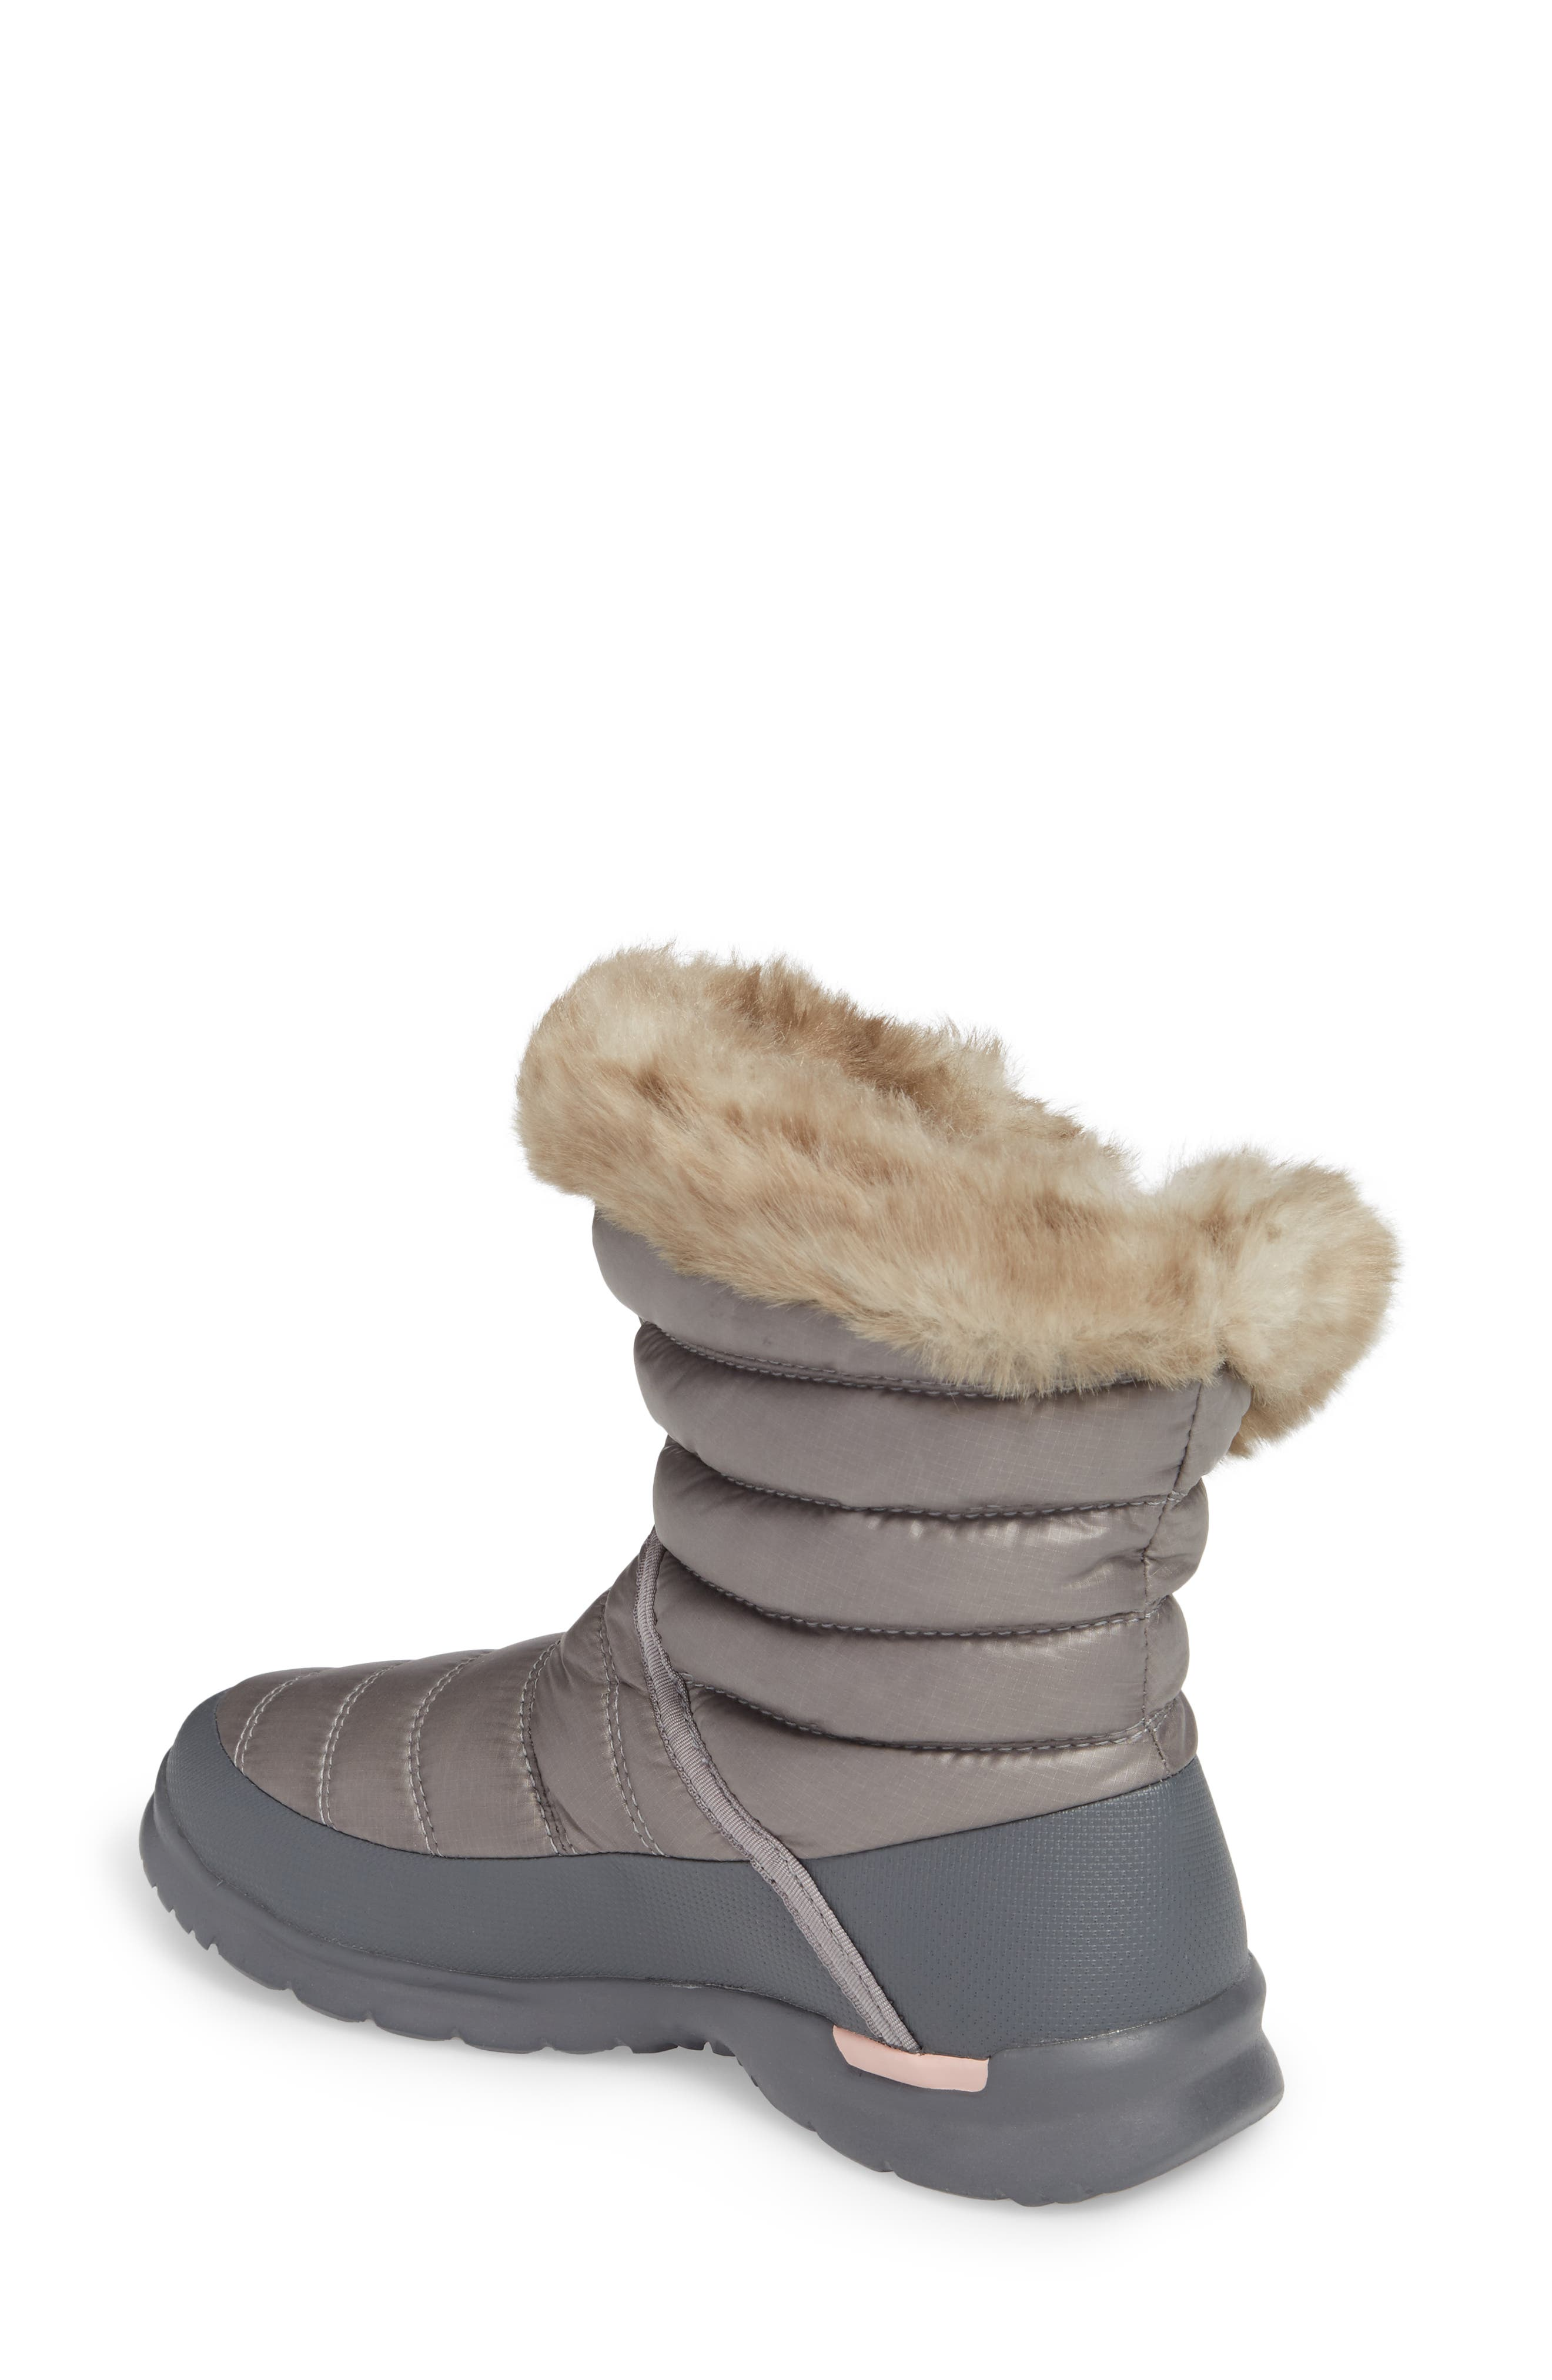 THE NORTH FACE,                             Microbaffle Waterproof ThermoBall<sup>™</sup> Insulated Winter Boot,                             Alternate thumbnail 2, color,                             021